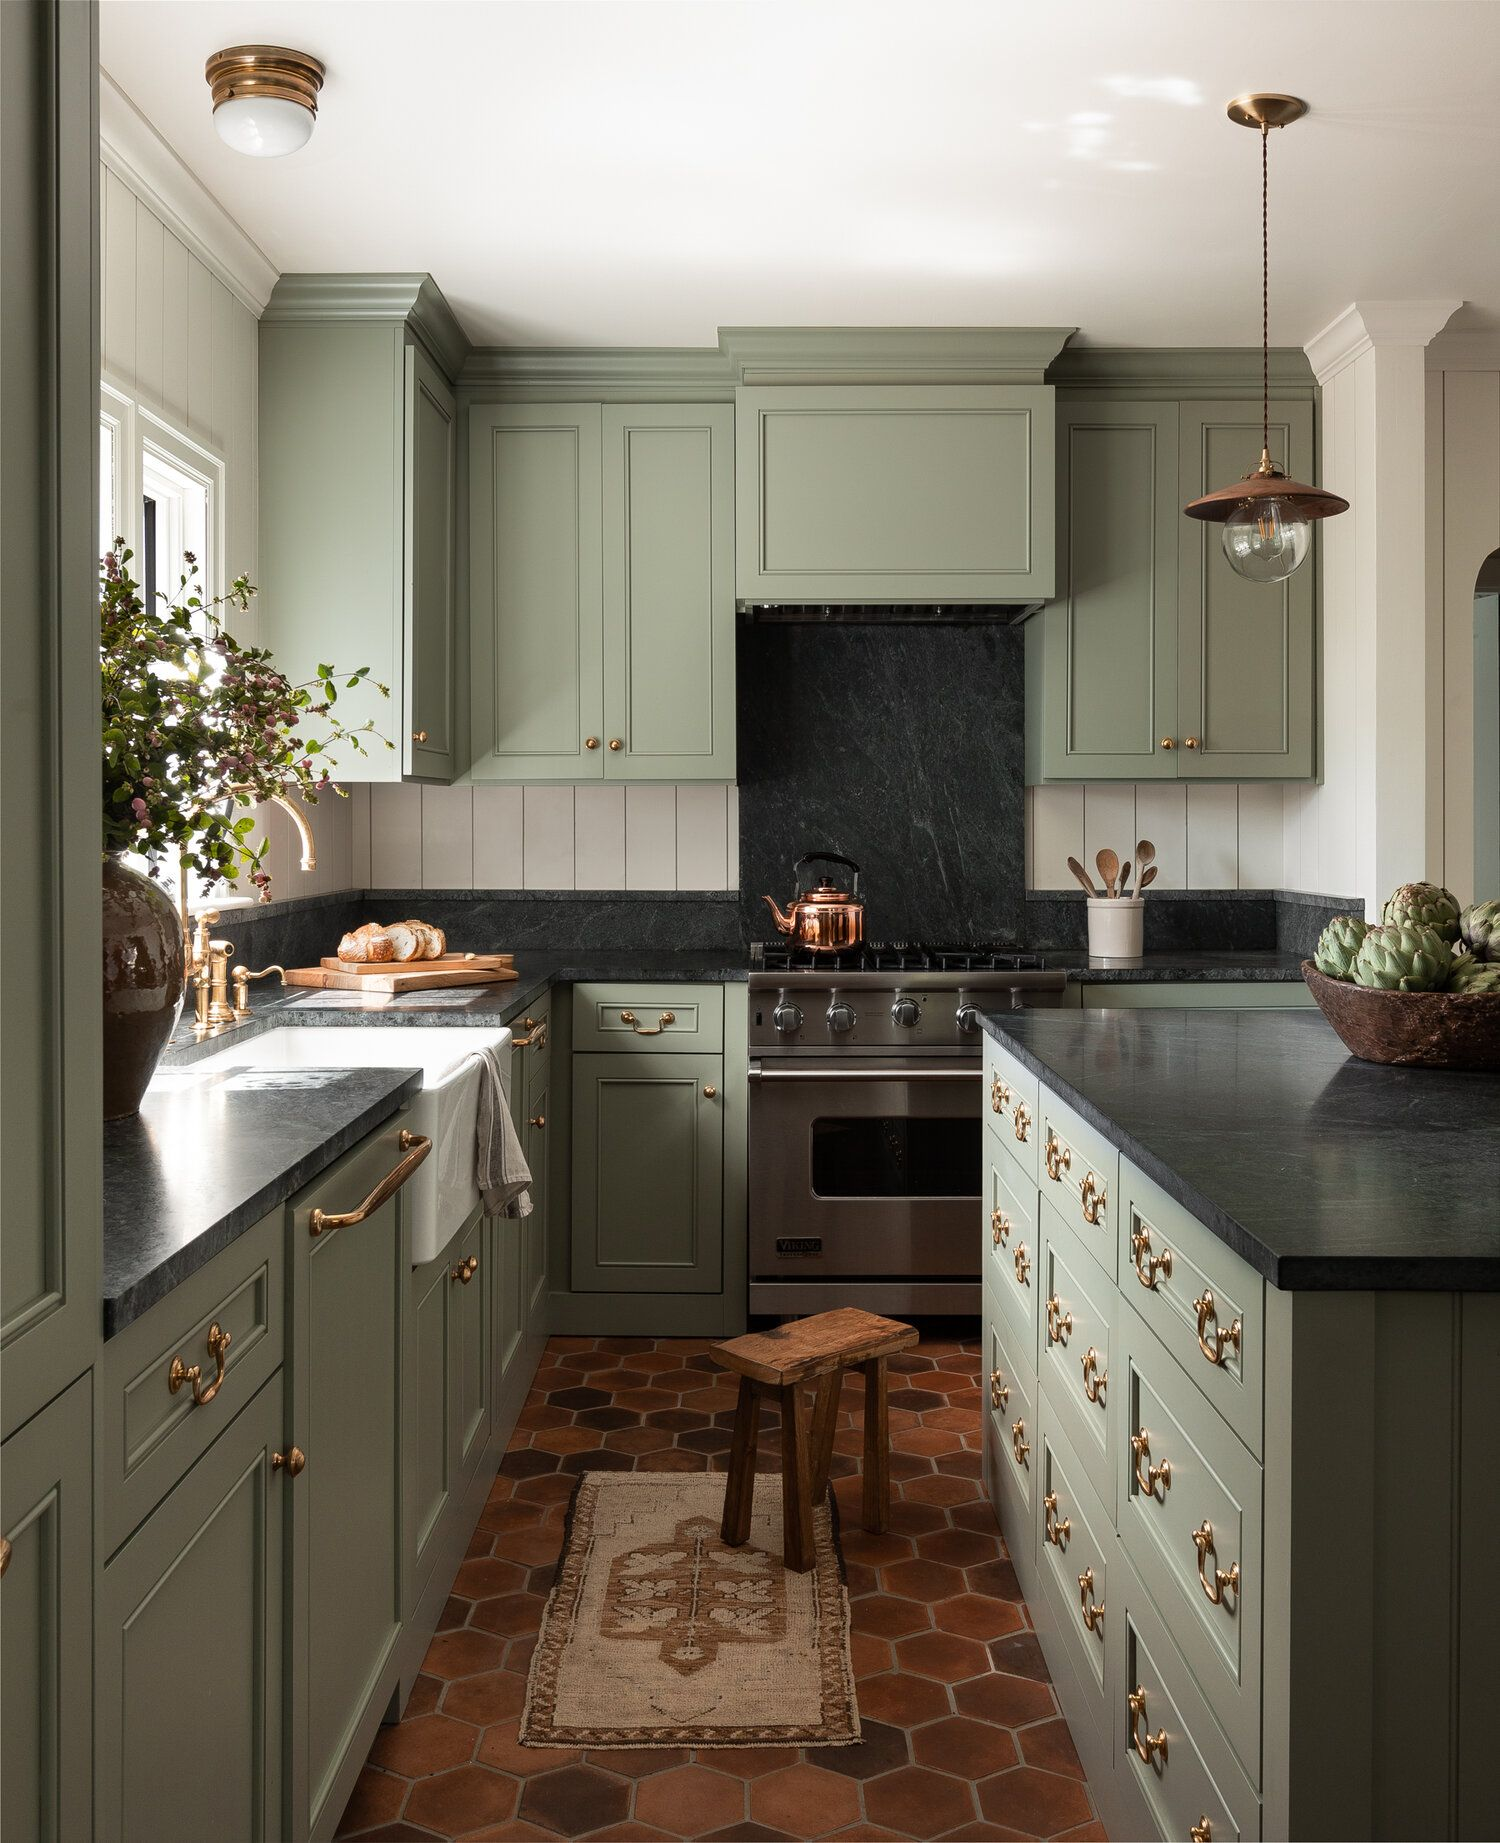 Home Tour Heidi Caillier S N28 Tudor Scout Nimble Traditional Kitchen Island Kitchen Design Green Kitchen Cabinets